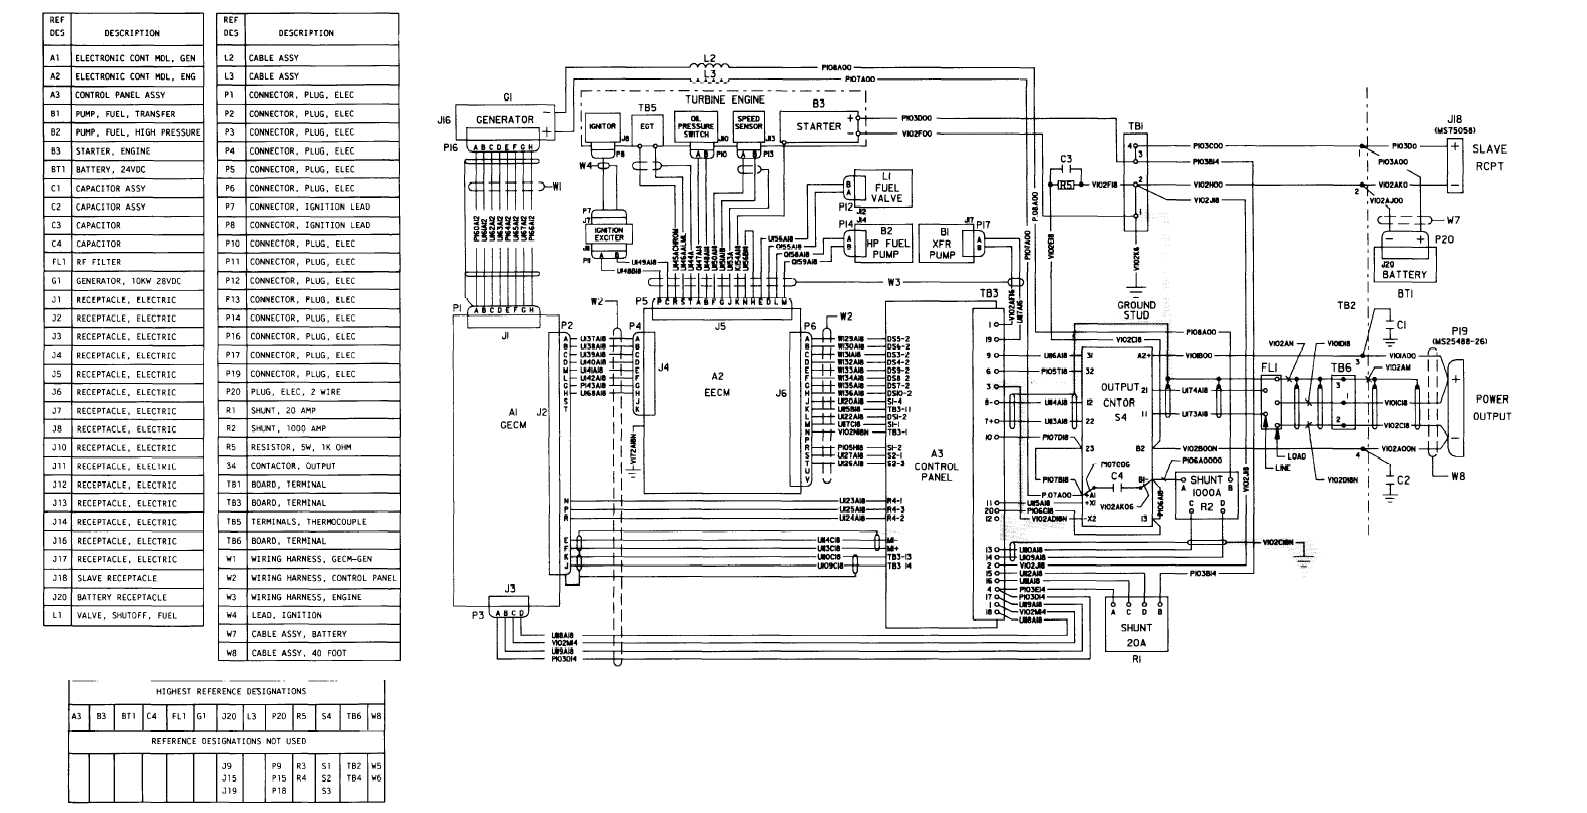 genset wiring diagram genset image wiring diagram marine engine generator installation diagram marine wiring on genset wiring diagram